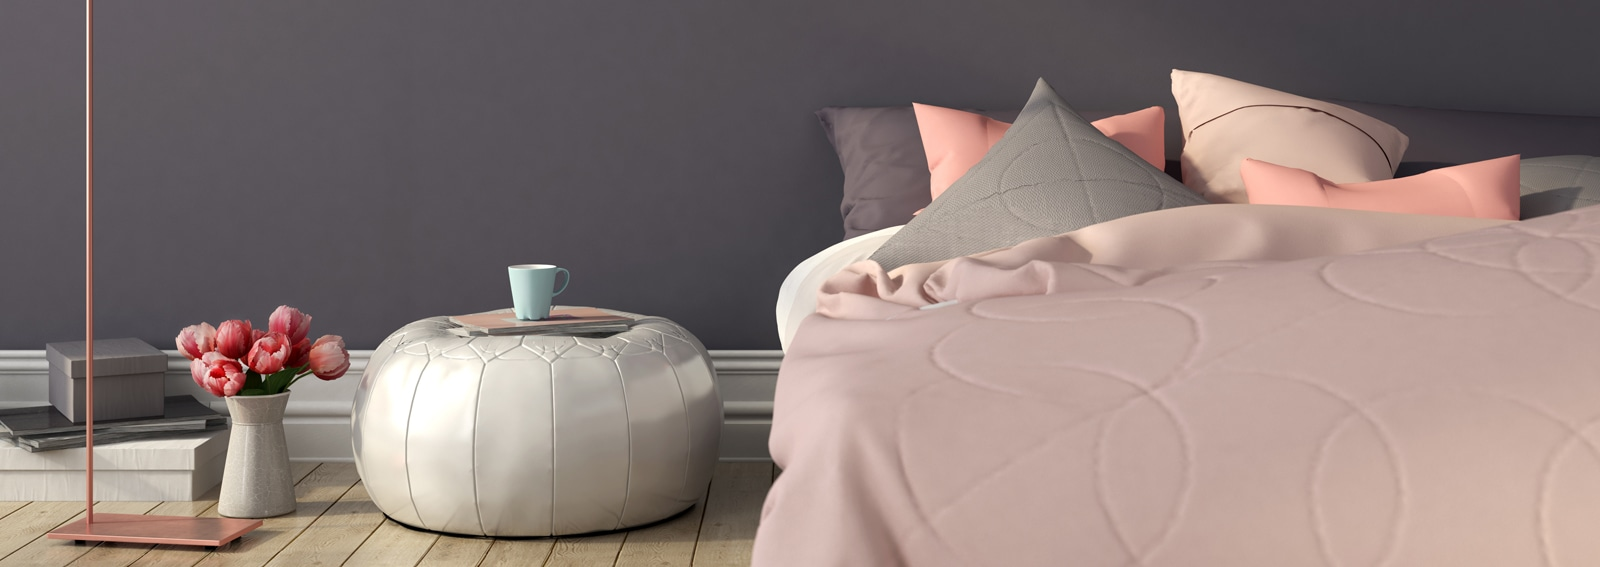 Bedroom in pink and gray color